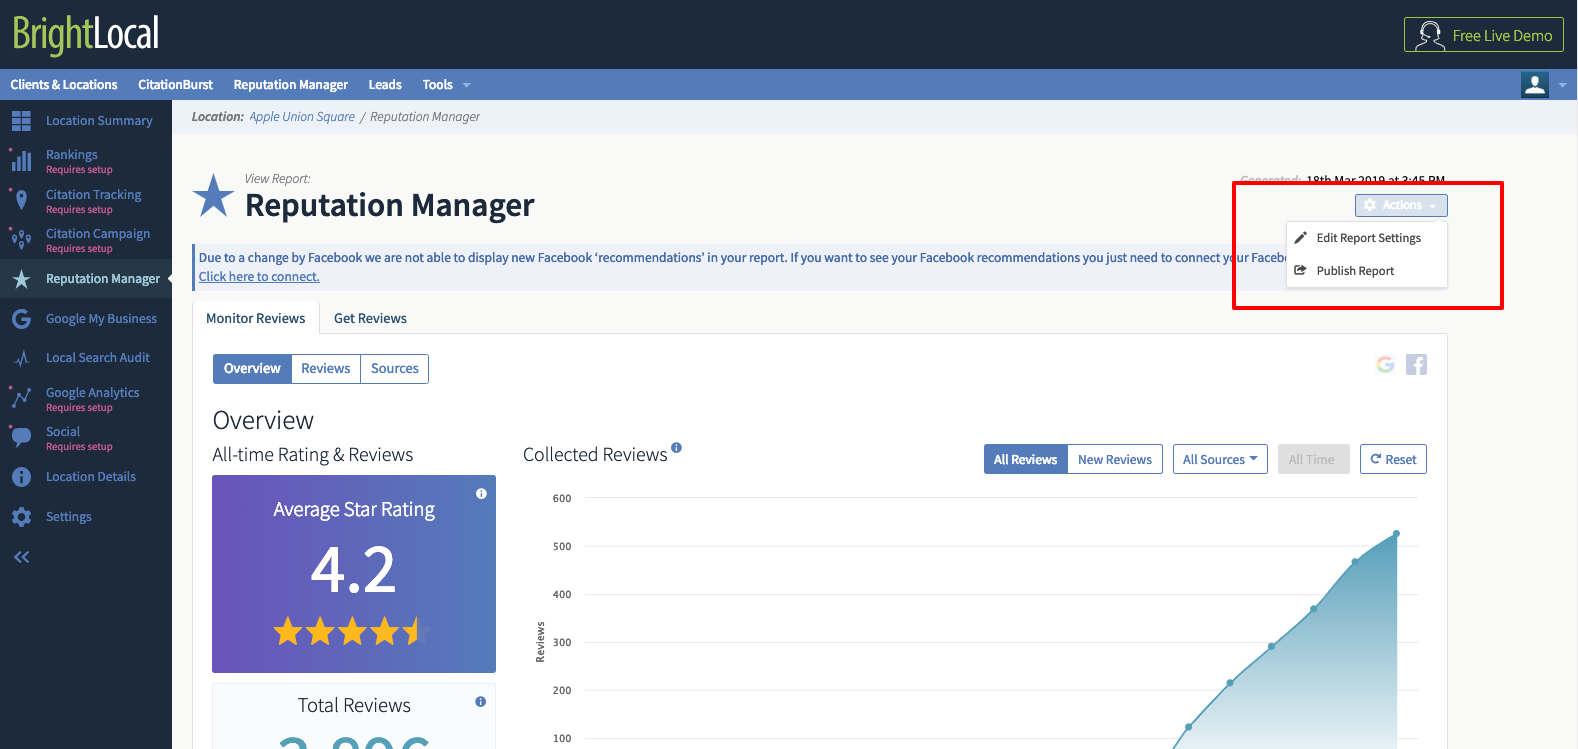 Location_Dashboard___Reputation_Manager___BrightLocal_com.png